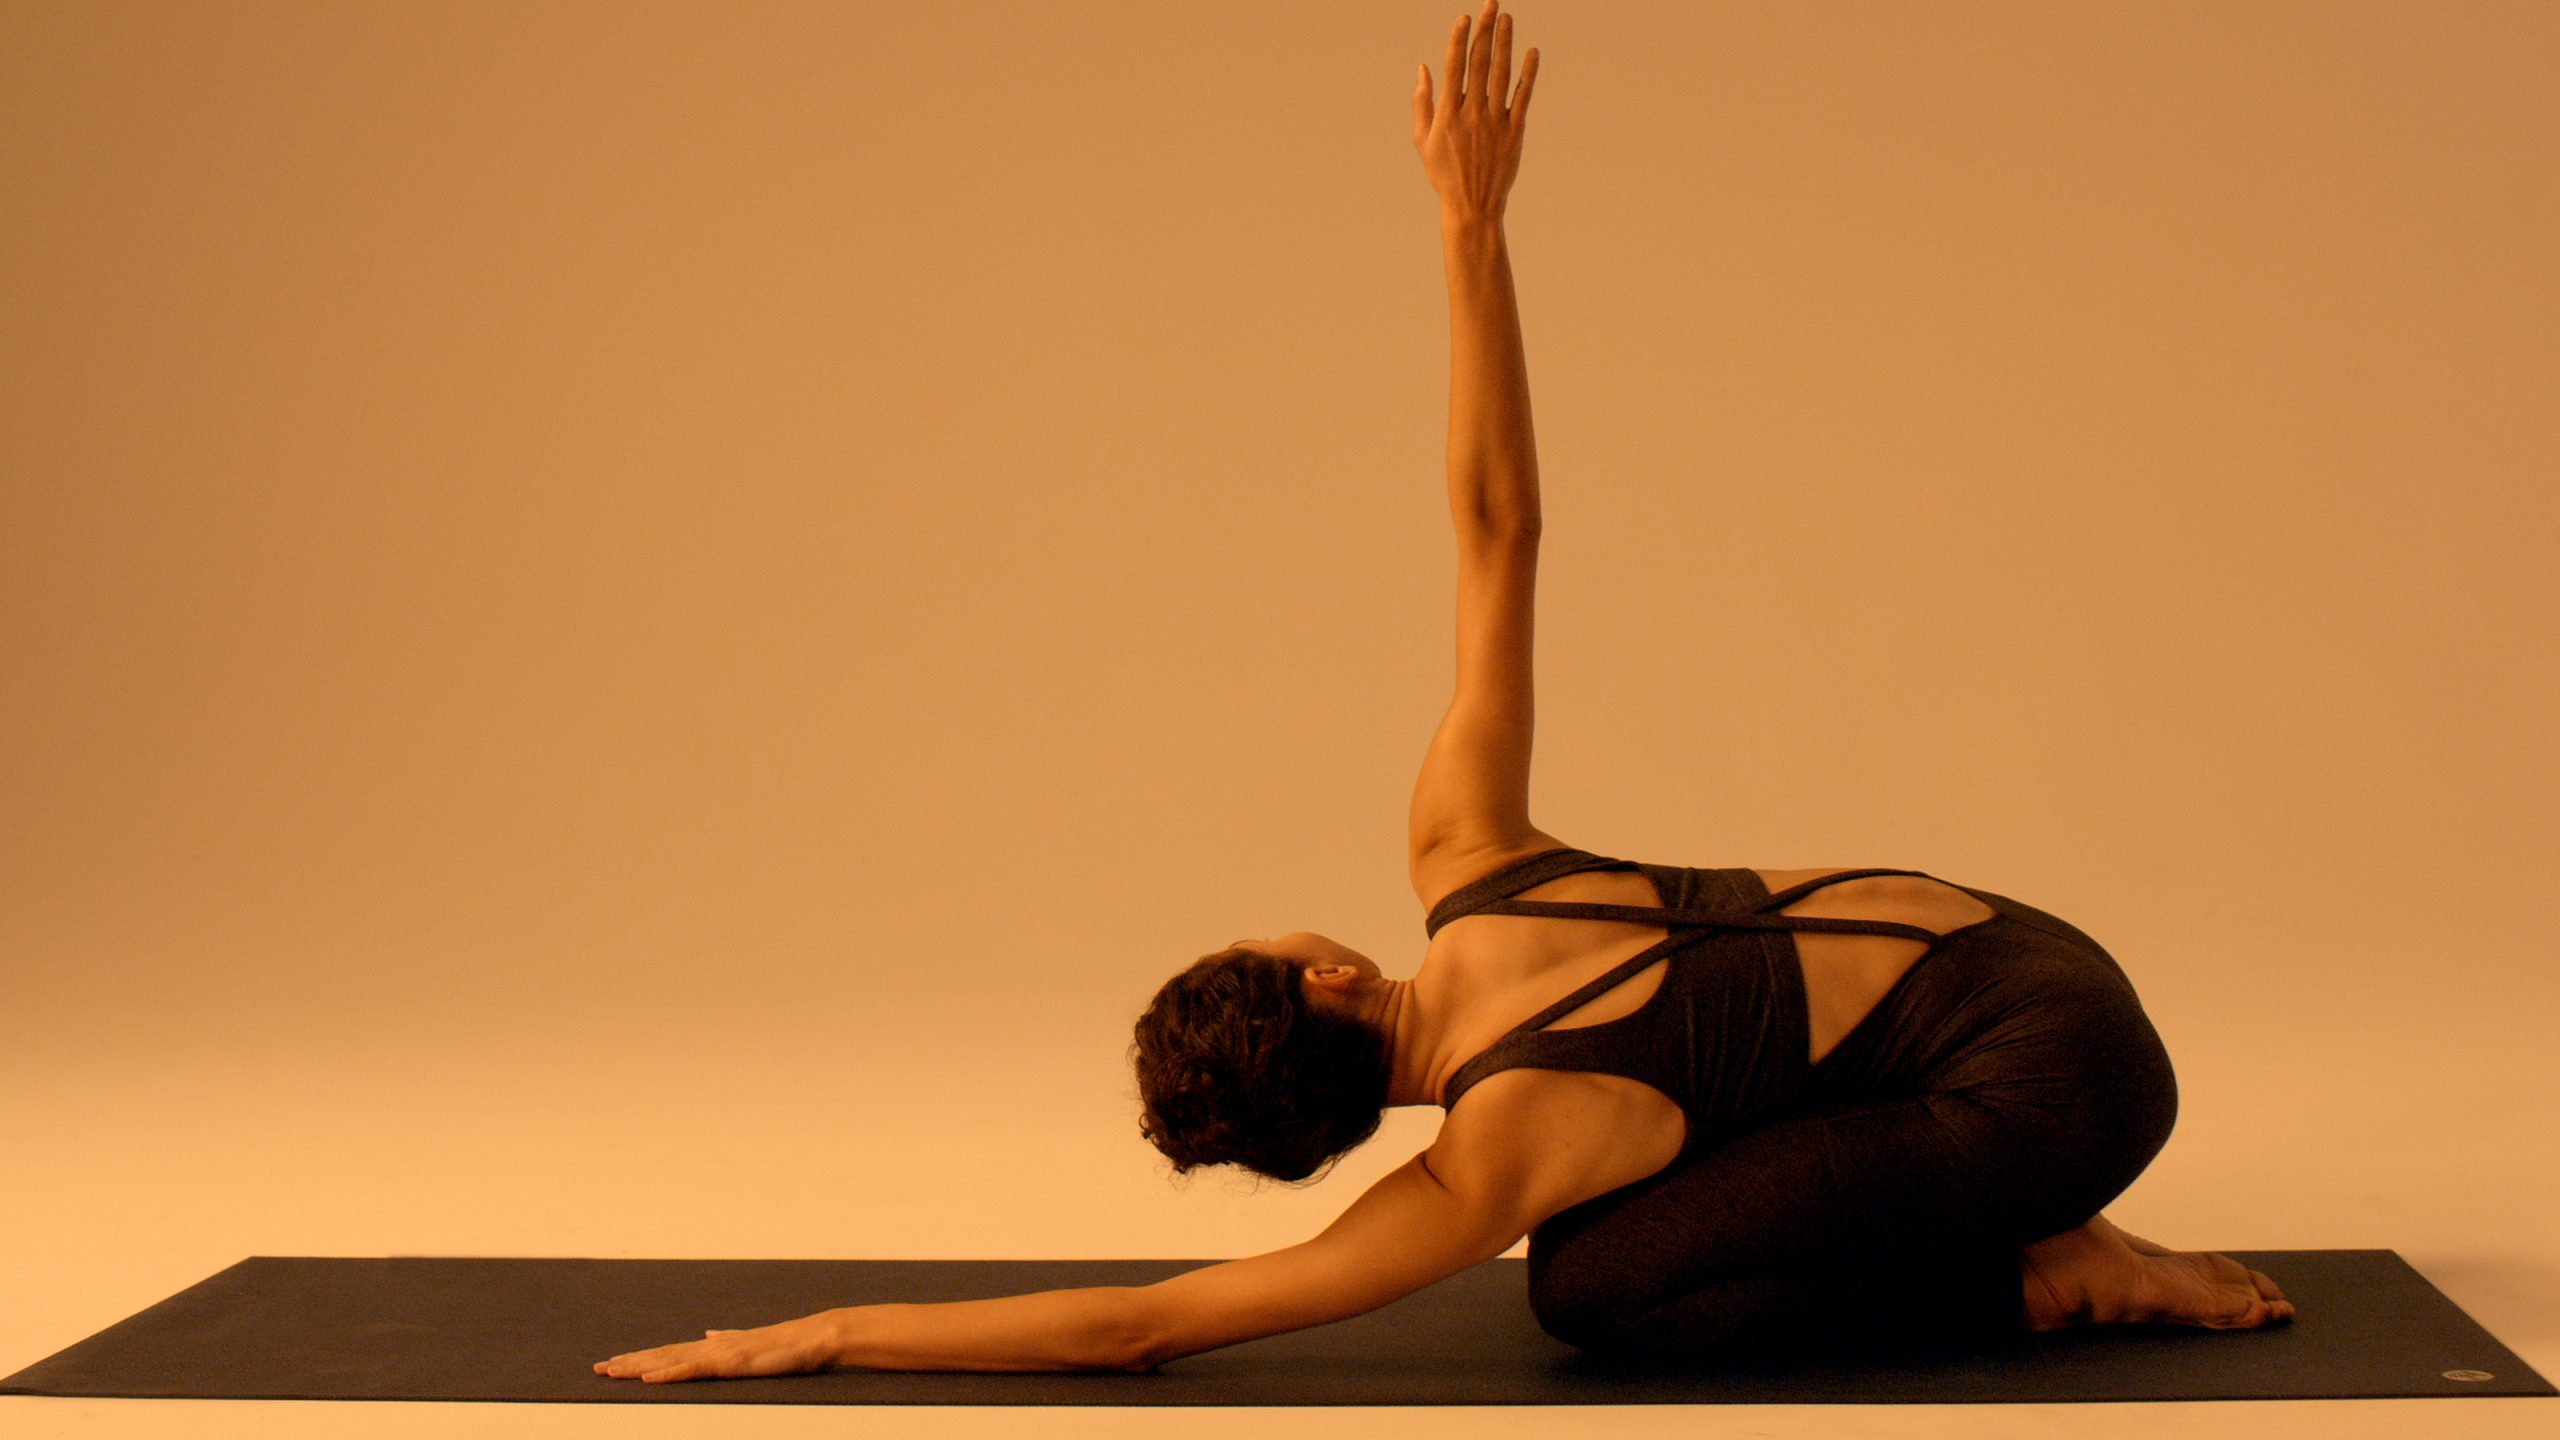 woman in kneeling yoga pose stretching arm up to the sky in twisted position